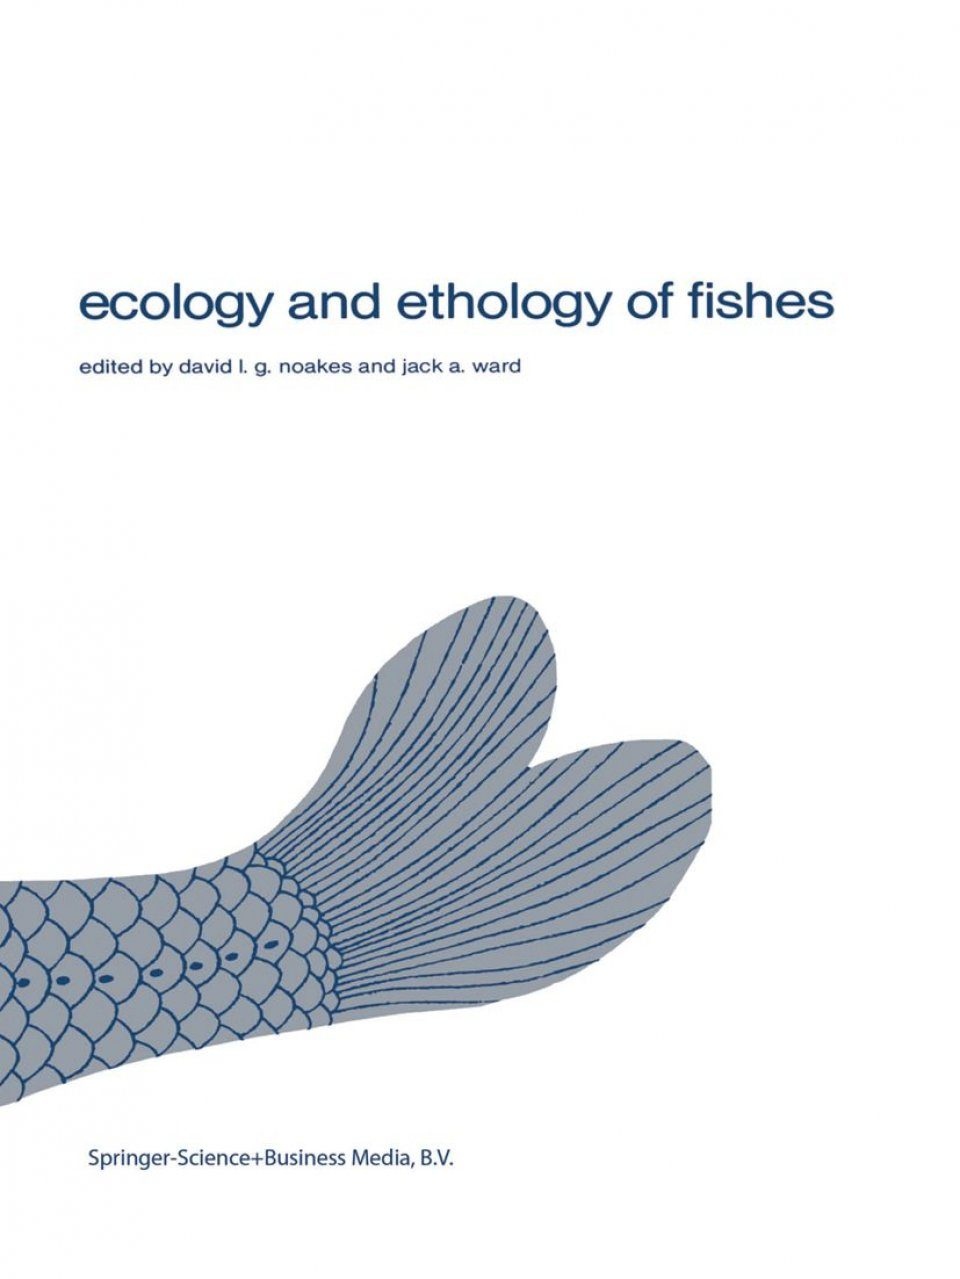 Ecology and Ethology of Fishes